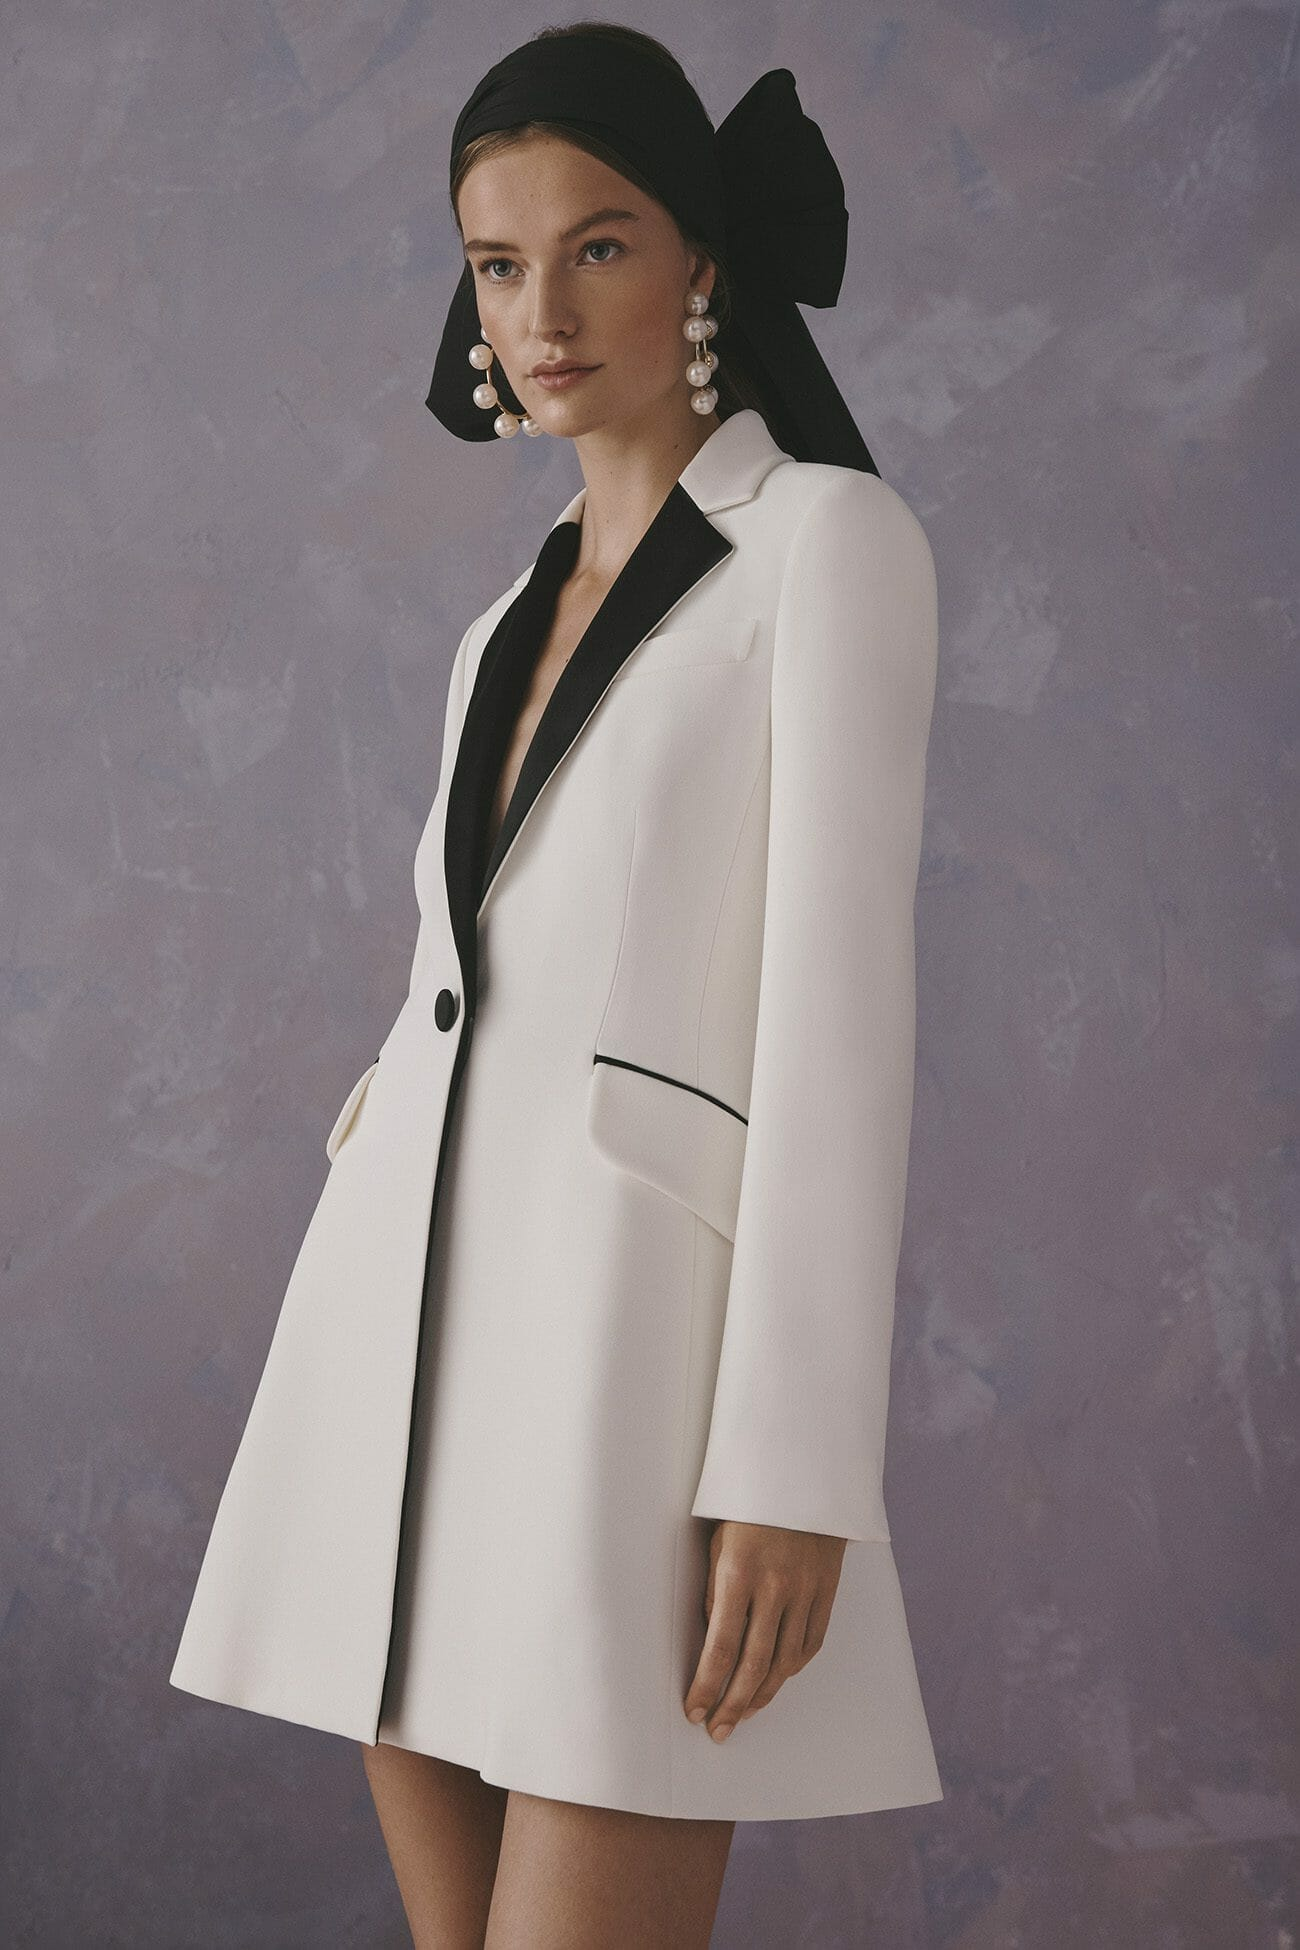 Carolina Herrera New York Resort 2020 Collection white suit dress